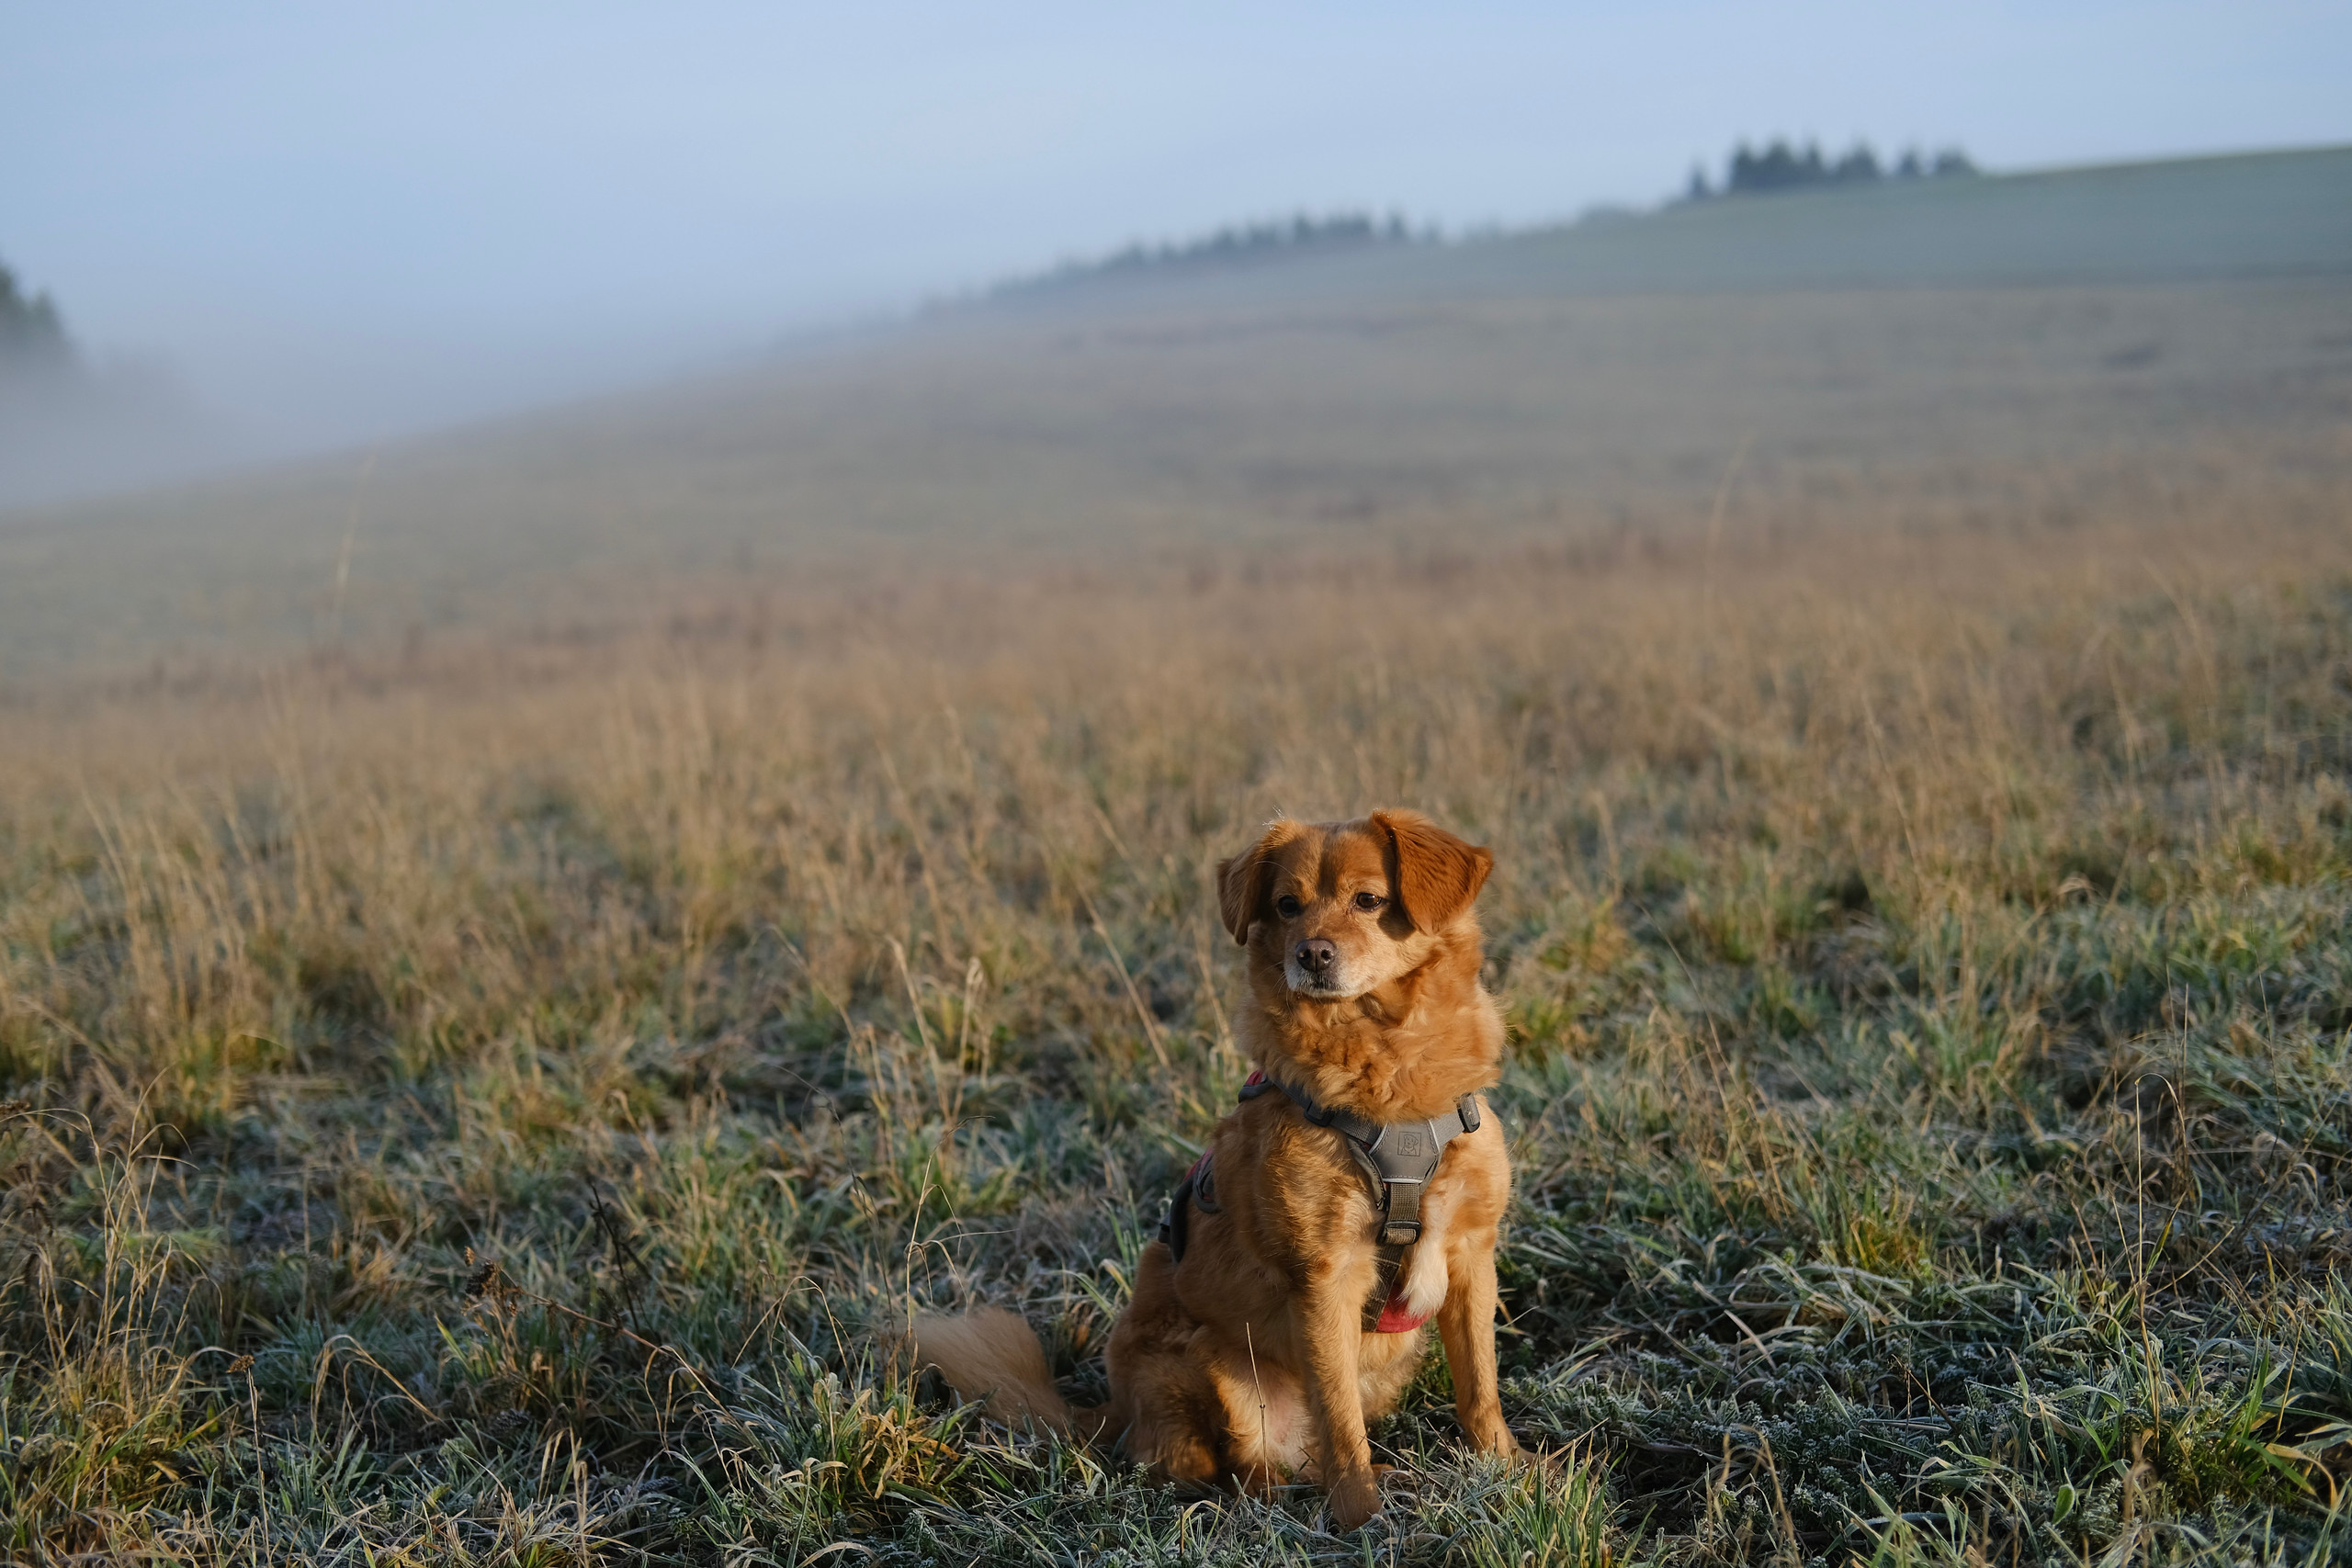 A full body portrait of a small red-haired dog sitting in a field surrounded by soft fog and lit by a weak sun